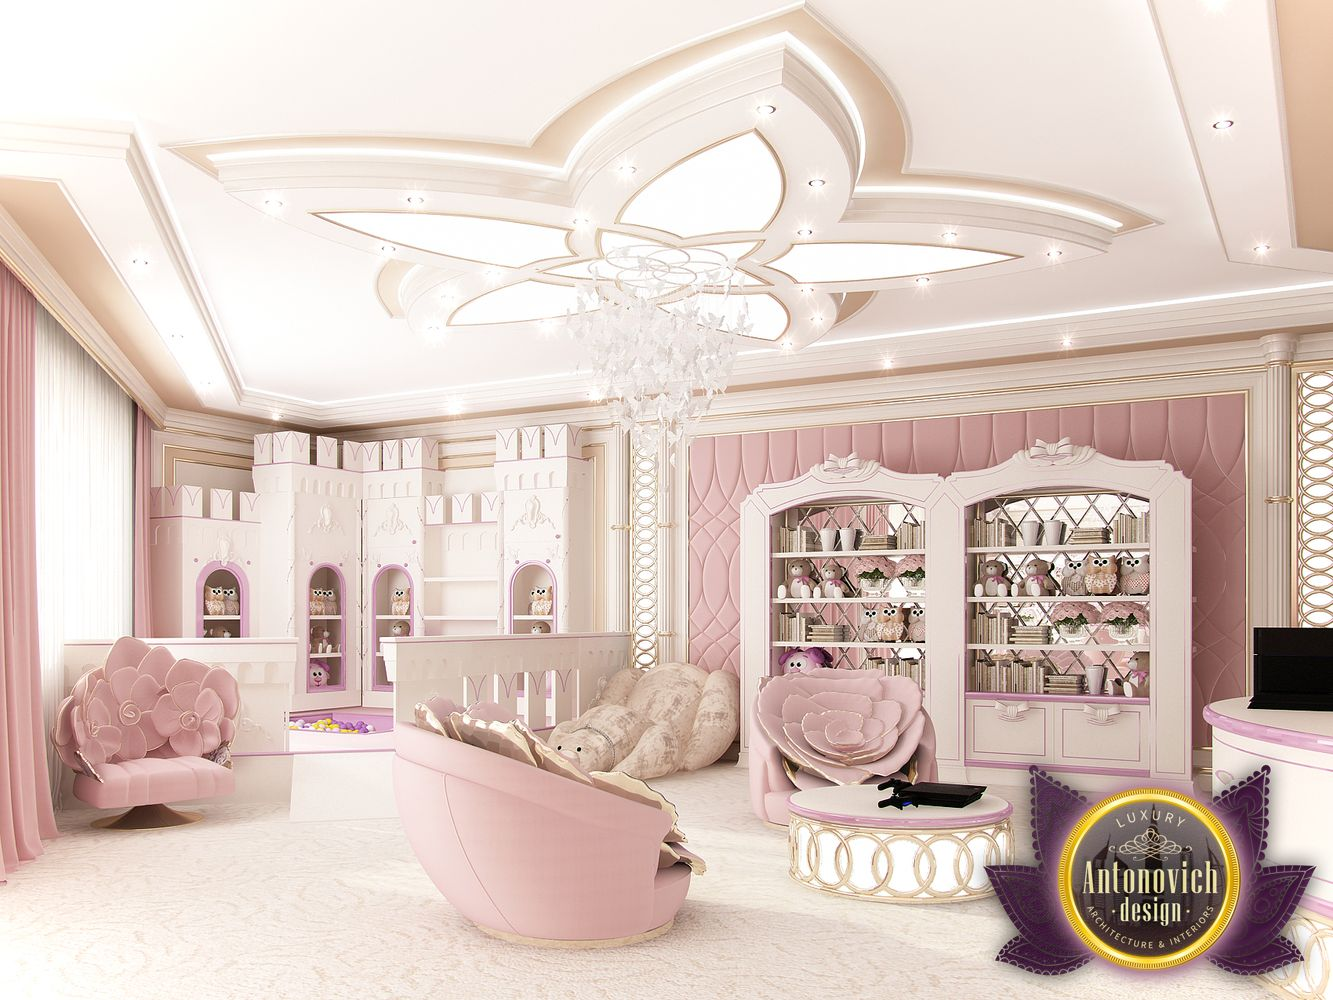 Pink Bedroom Decor Luxury Antonovich Design Uae Interior Decoration By